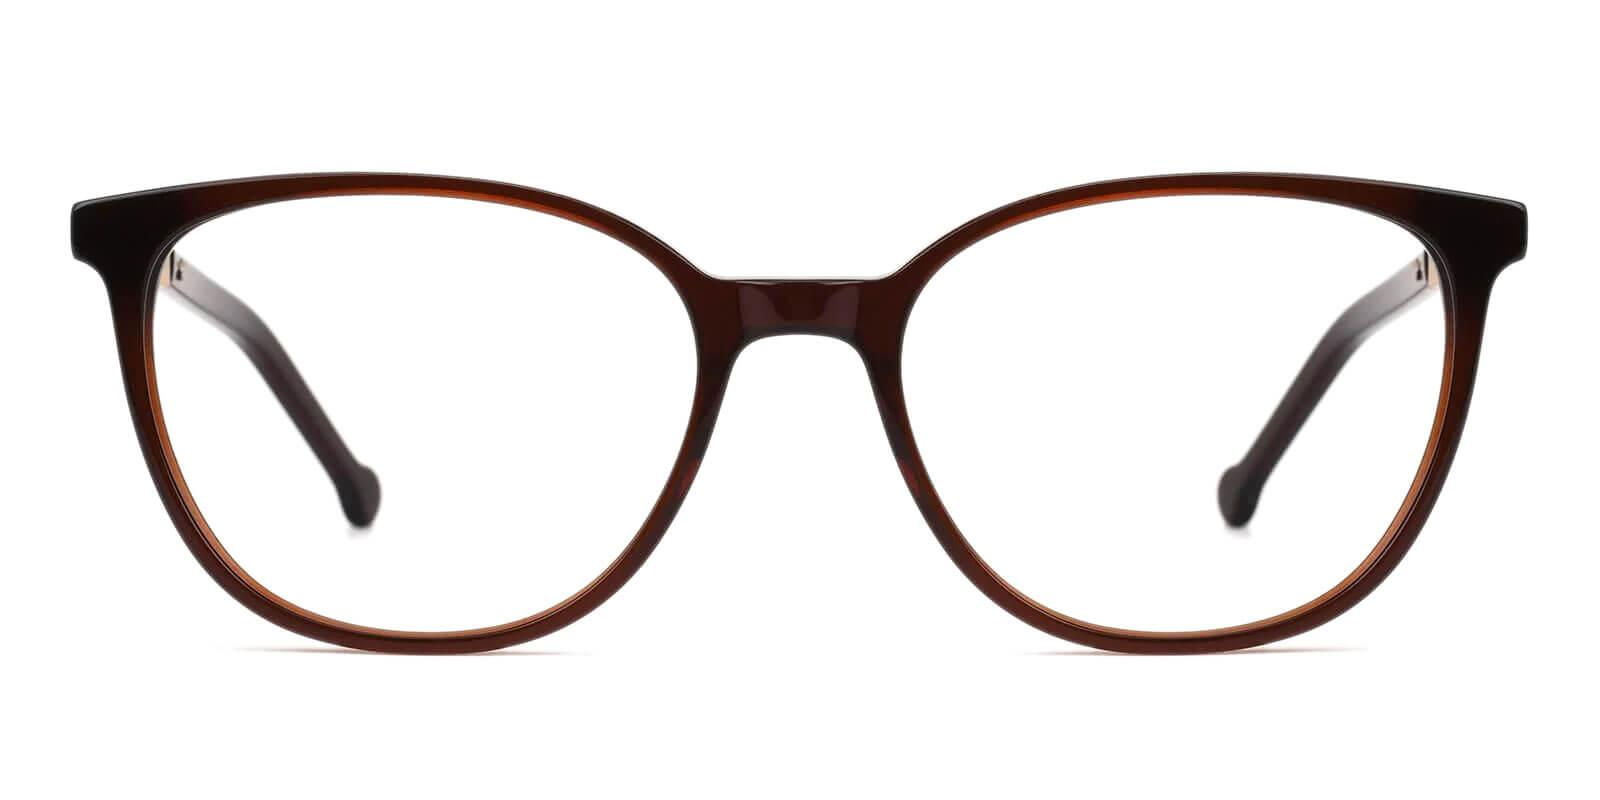 Saunter Brown Acetate Eyeglasses , SpringHinges , UniversalBridgeFit Frames from ABBE Glasses